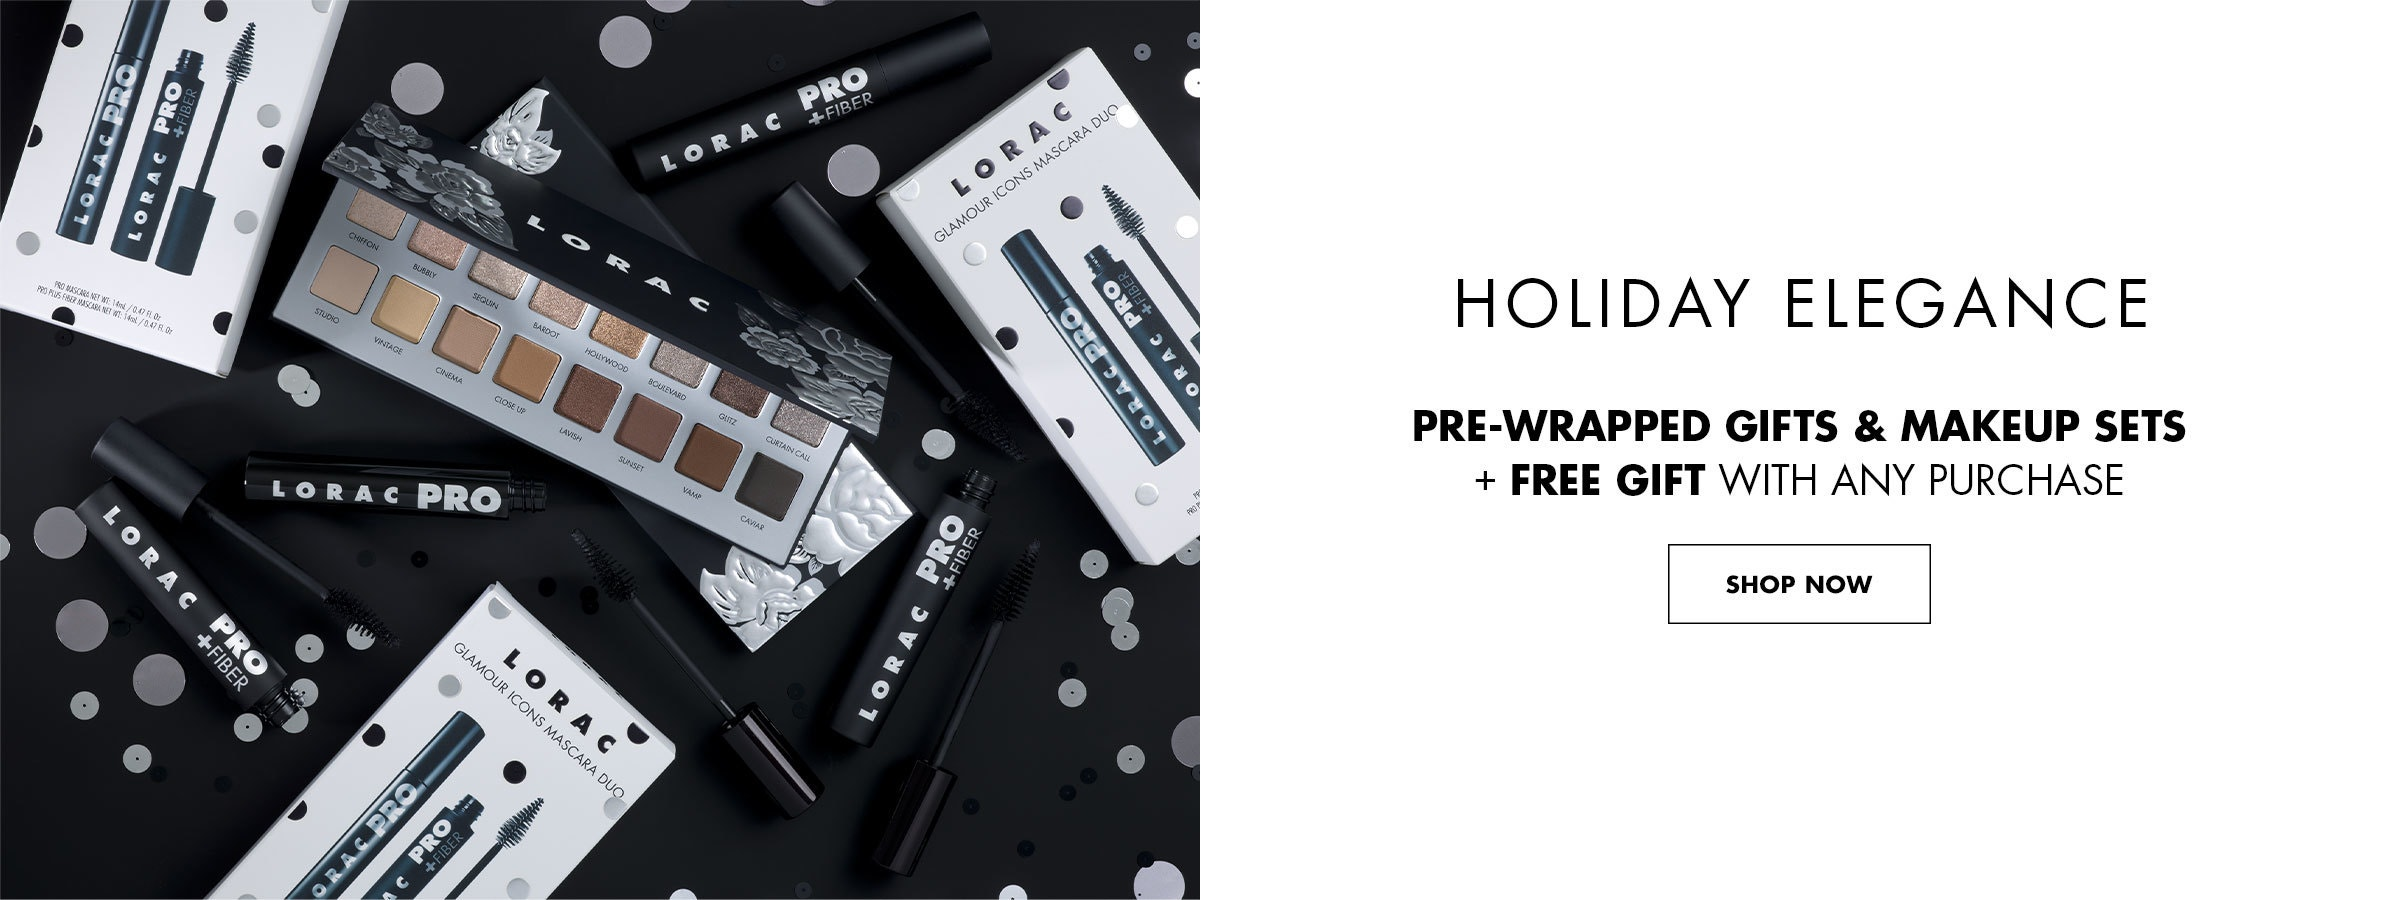 LORAC | Holiday Elegance Pre Wrapped Gifts and Makeup Sets with free gift with any purchase | Products on a black background | SHOP NOW